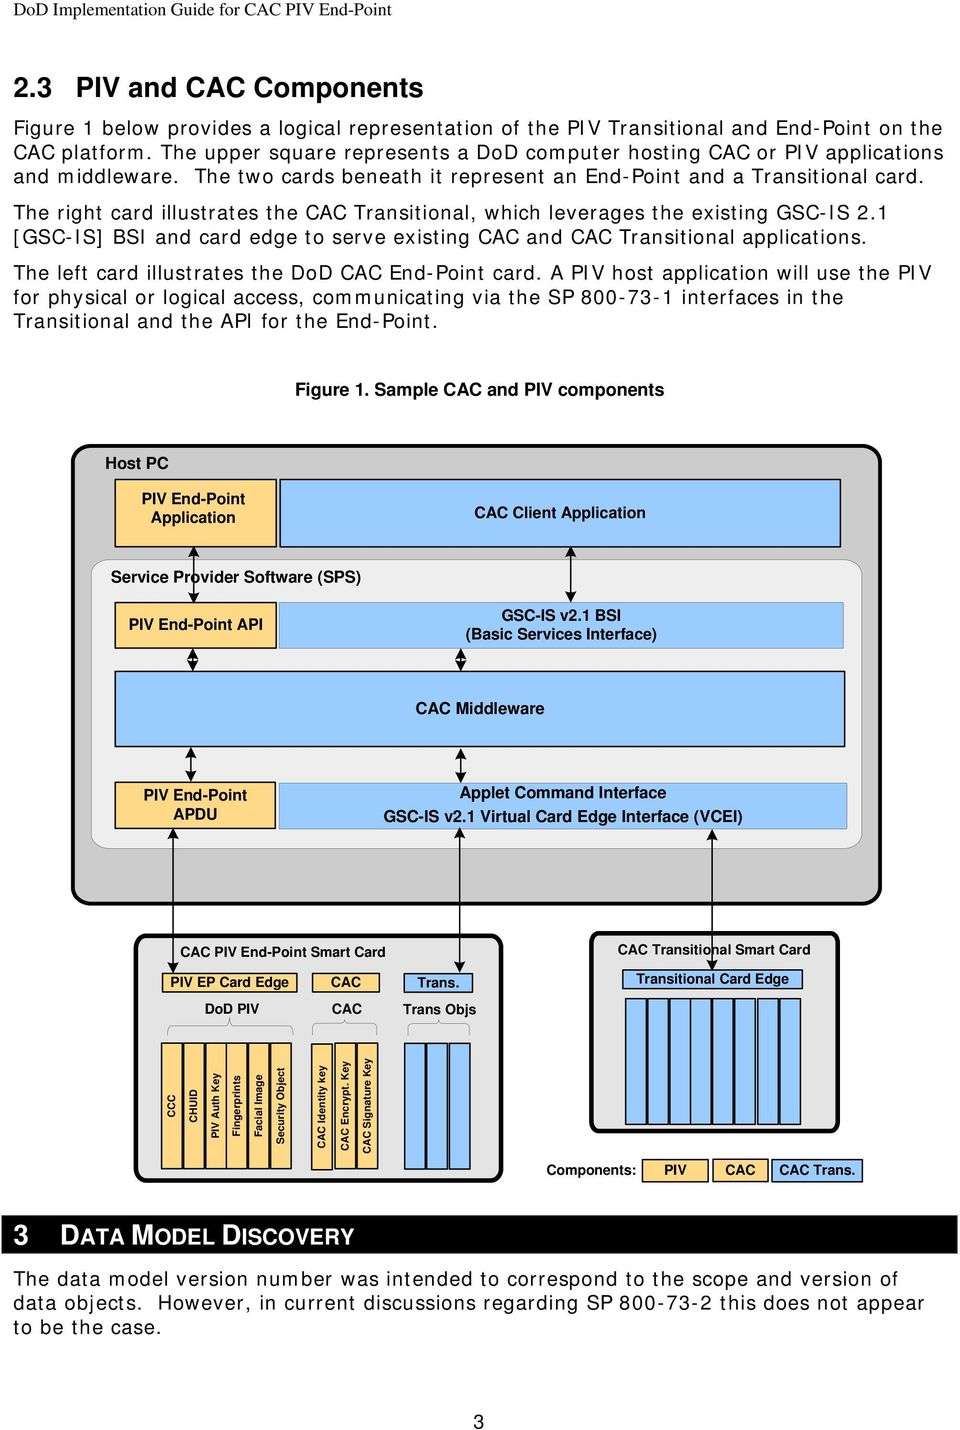 The right card illustrates the CAC Transitional, which leverages the existing GSC-IS 2.1 [GSC-IS] BSI and card edge to serve existing CAC and CAC Transitional applications.